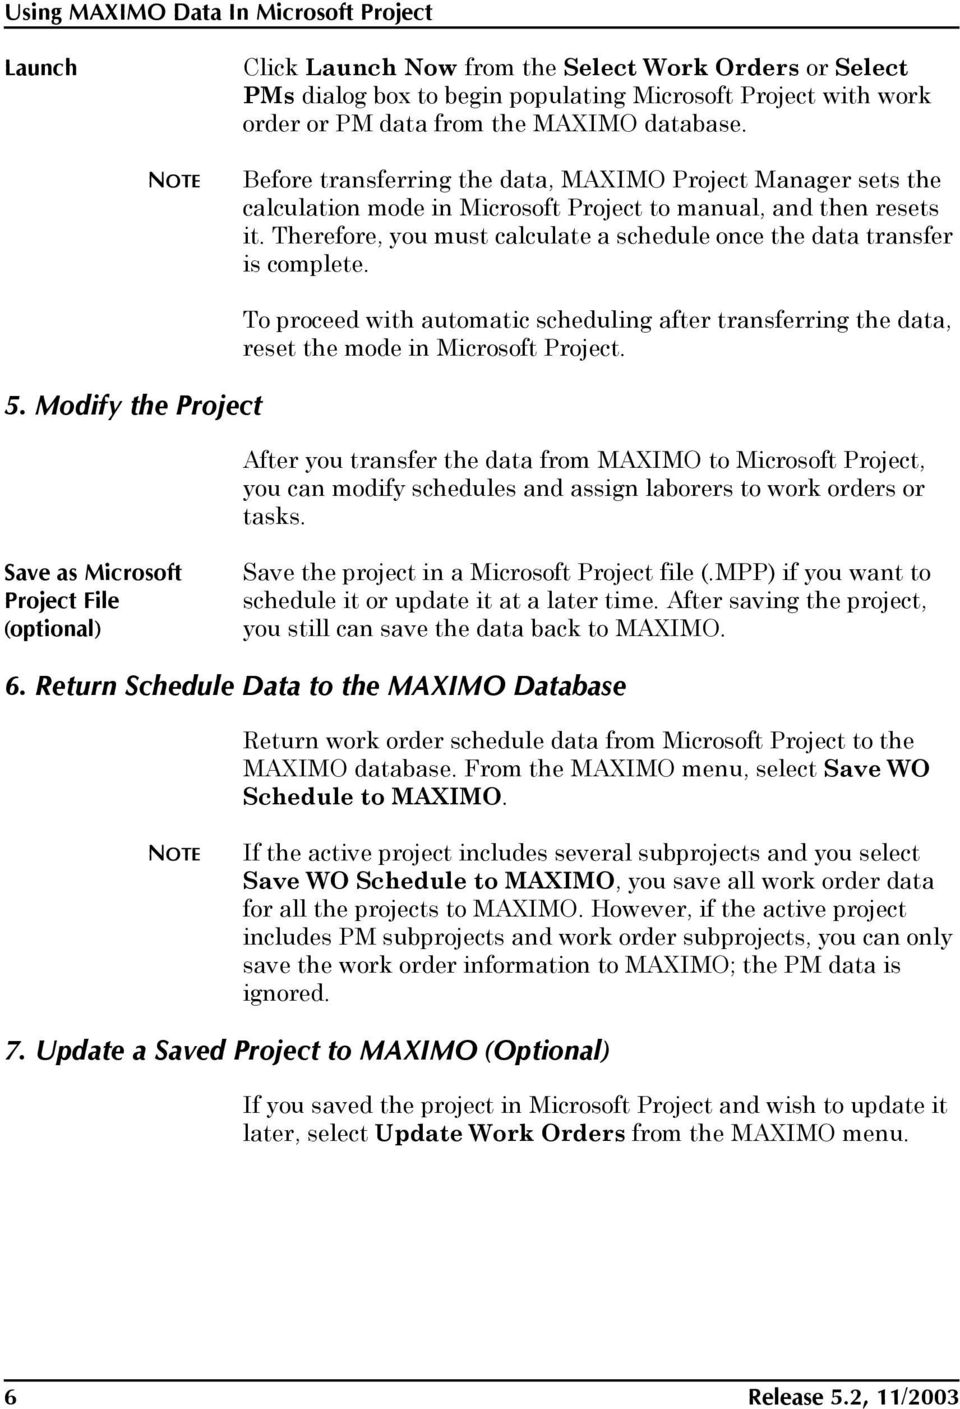 maximo project manager user s guide pdf rh docplayer net Manuals in PDF User Manual Template